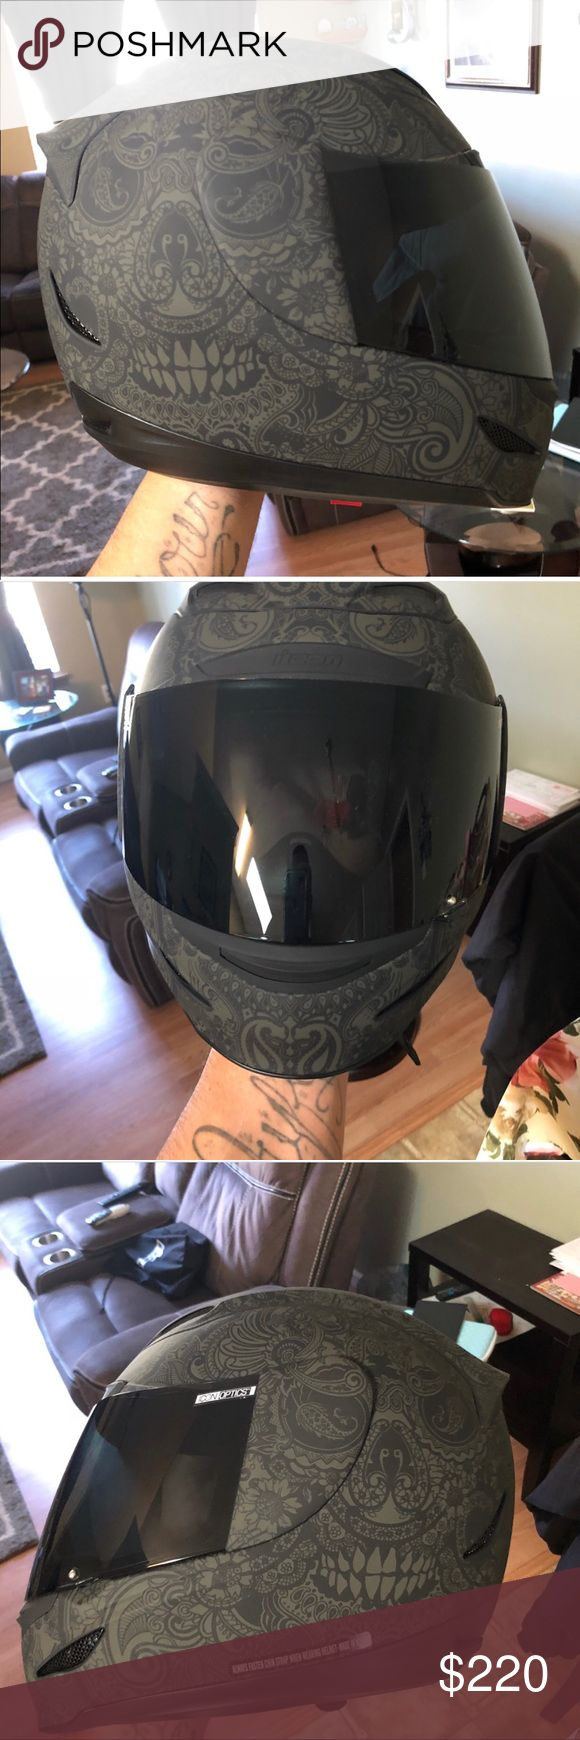 Icon helmet FOR SALE!! This is a great deal for this helmet I've only worn it once for 30 minutes I'm sad to get rid of it but sadly we don't ride anymore😔 it's a size small it also comes with tinted and clear lens asking $220 but will take best offer💕 ICON Other